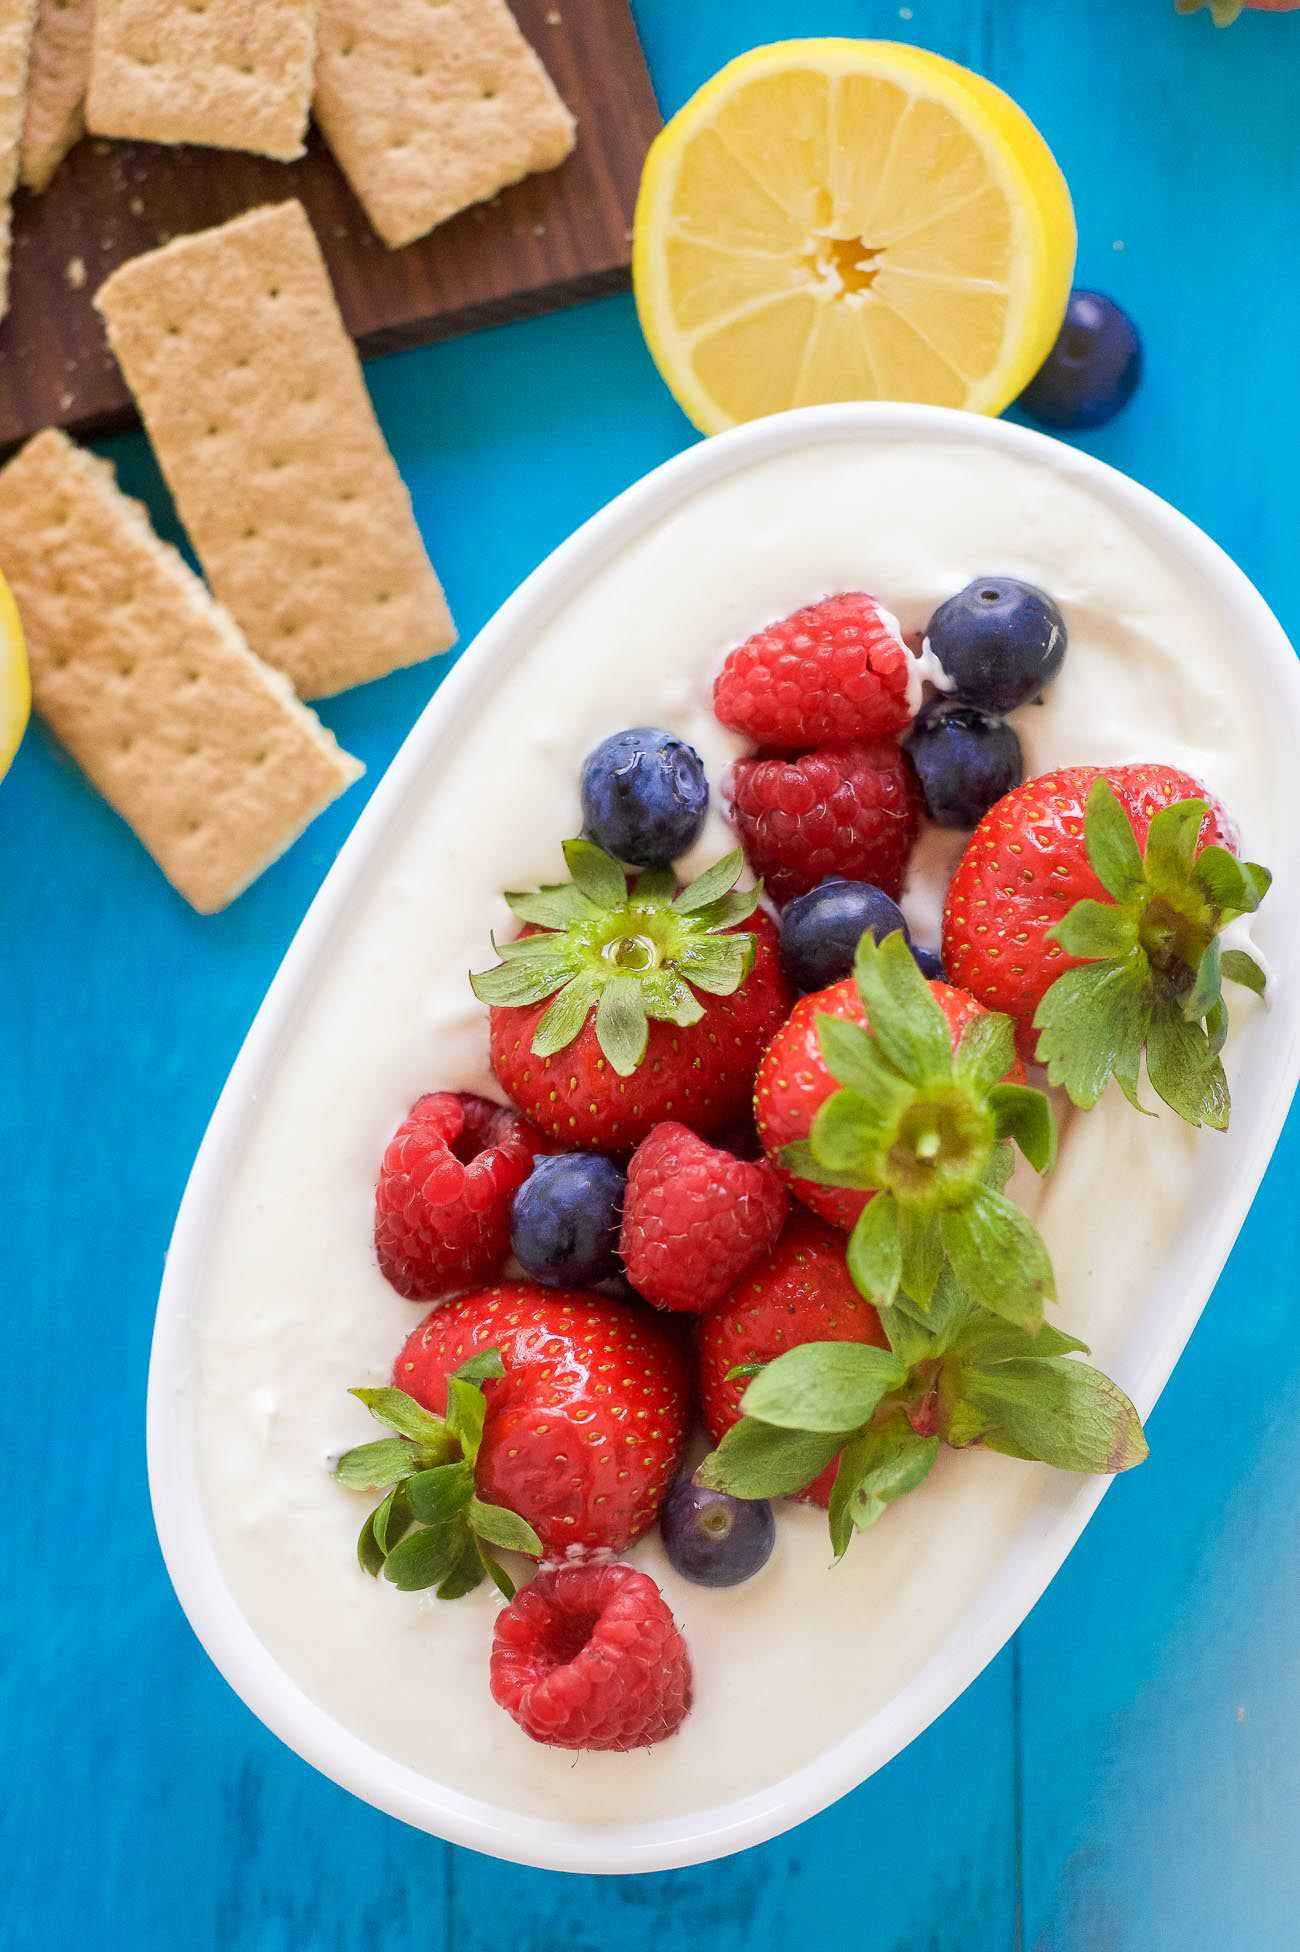 When I took my first five spoonfuls of this Lemon Berry Cheesecake Dip,  I knew I was a goner. Let's all agree this is a perfectly acceptable afternoon snack. Mmmkay?